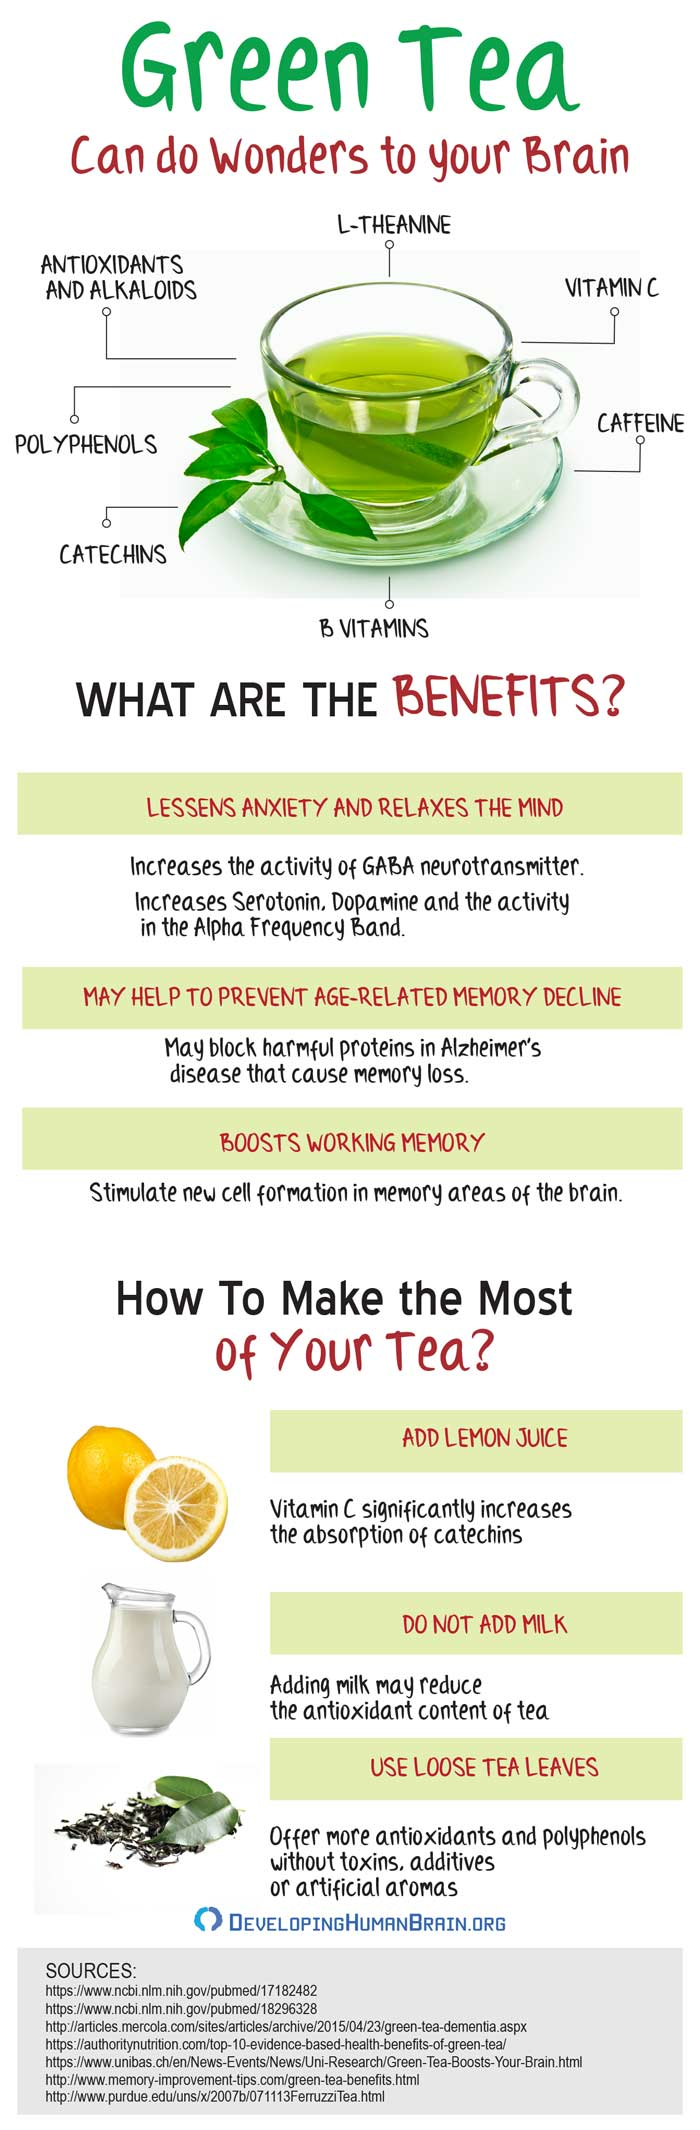 green tea brain benefits infographic